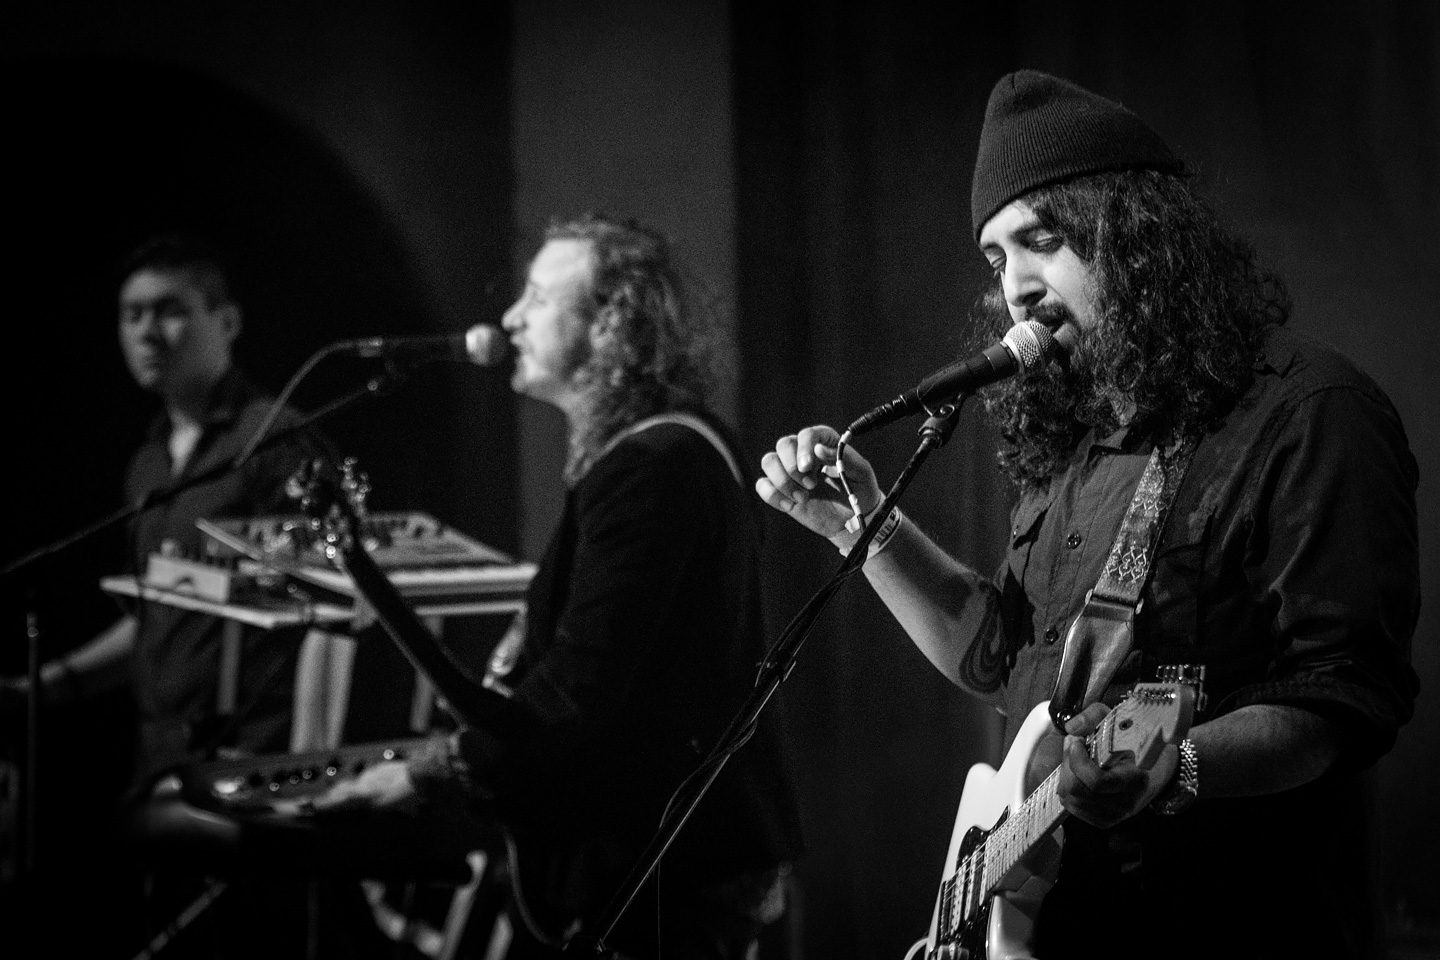 Photos of Denver bands Dragondeer and Eldren from Bluebird Theater